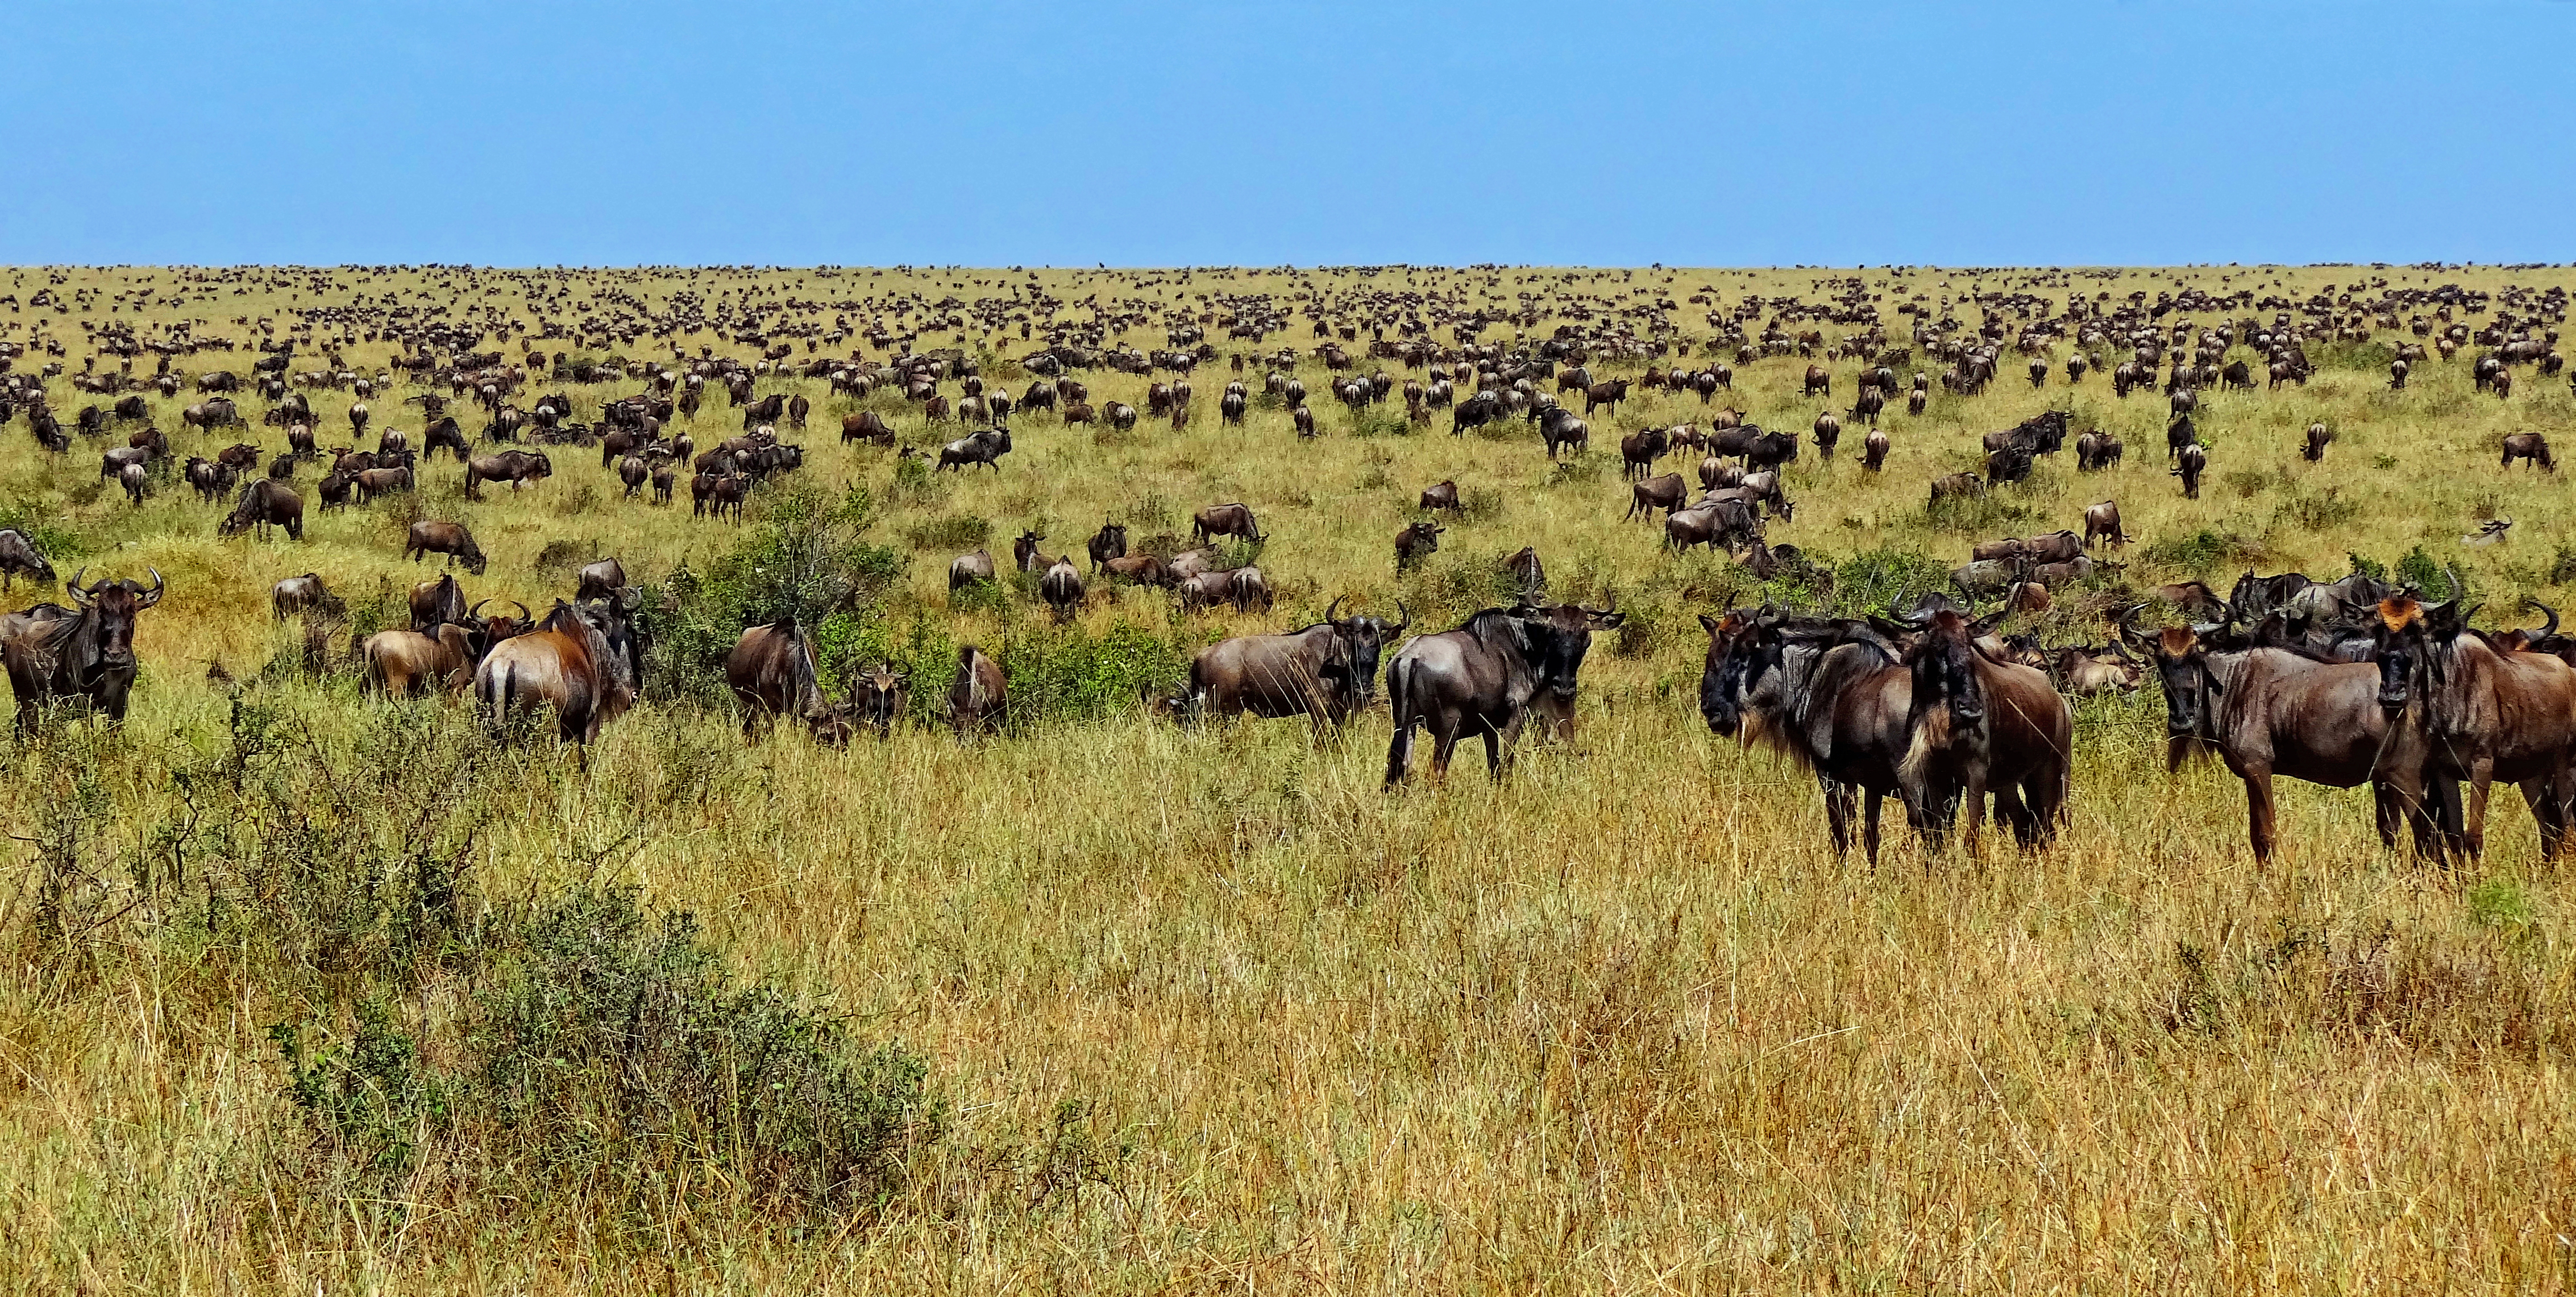 Numerous wildebeest photographed after having crossed the river Mara from Serengeti to the Mara. Photo taken during the Great Migration on August 22, 2012.